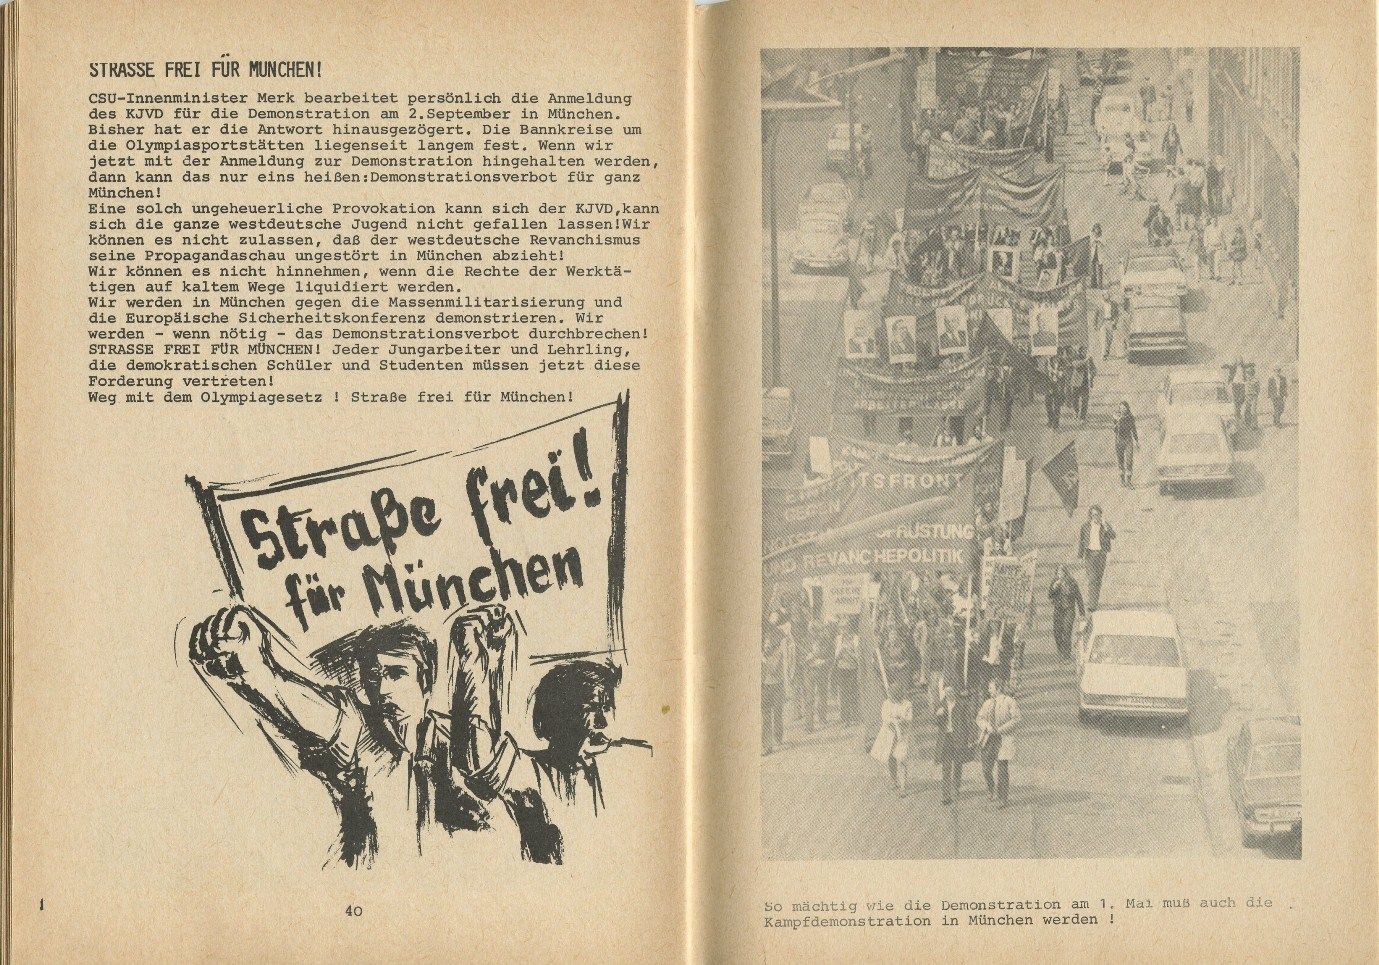 ZB_PBL_Roter_Antikriegstag_1972_22